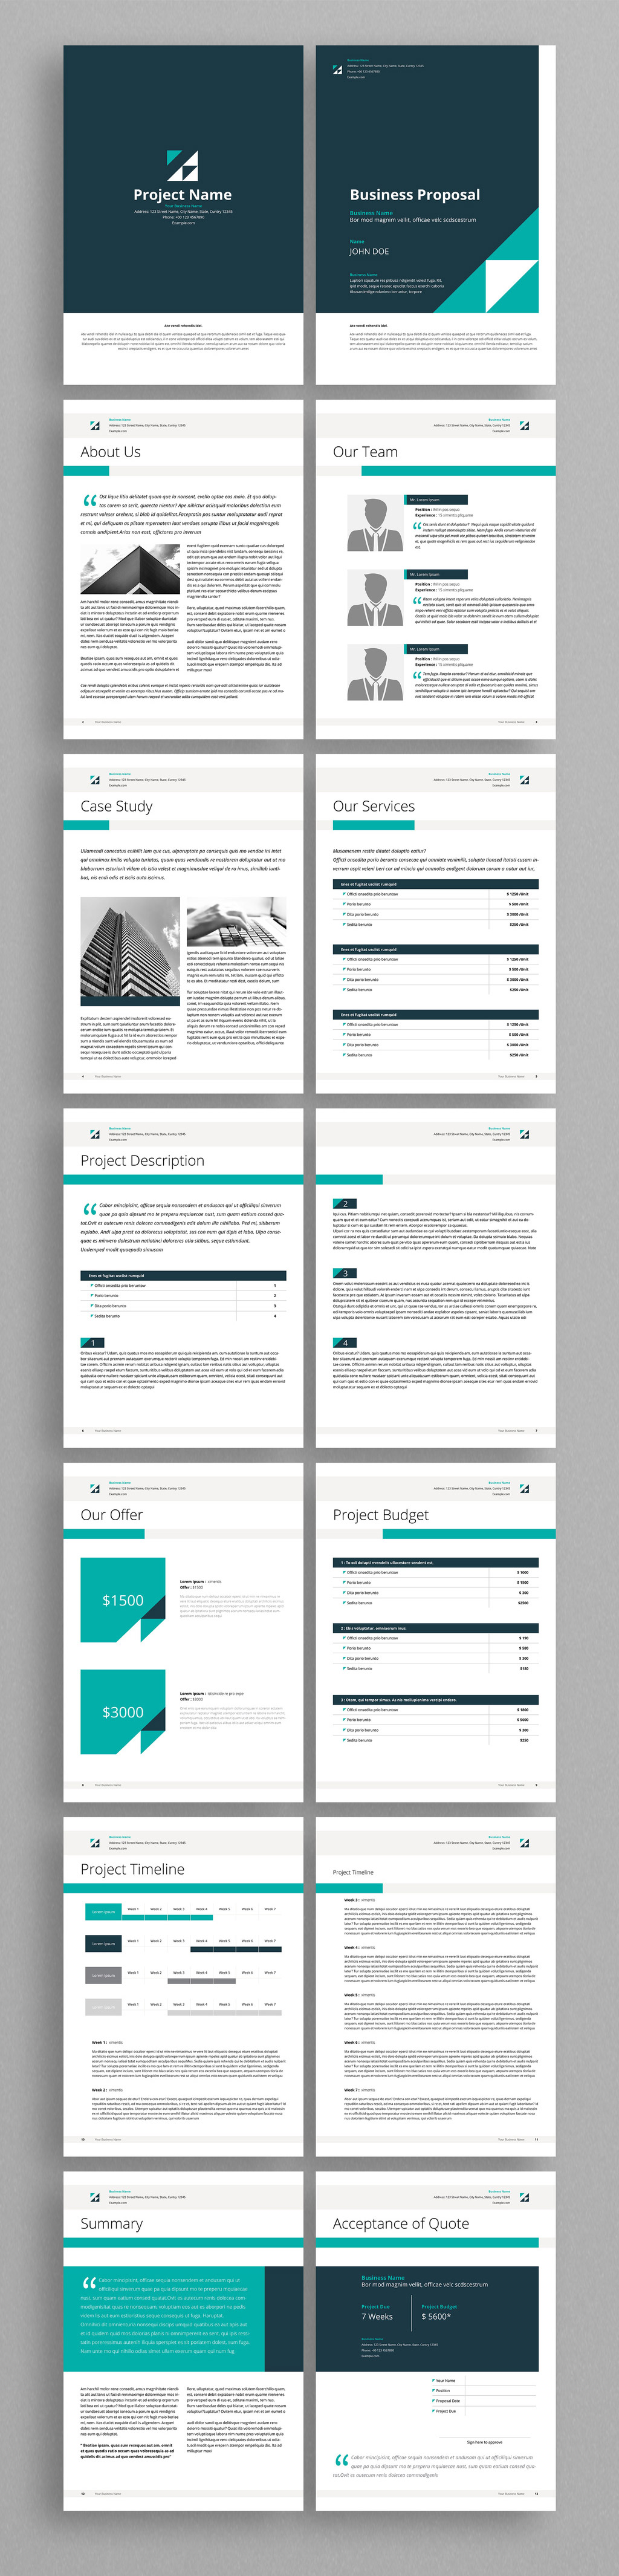 Business proposal design template with green accents